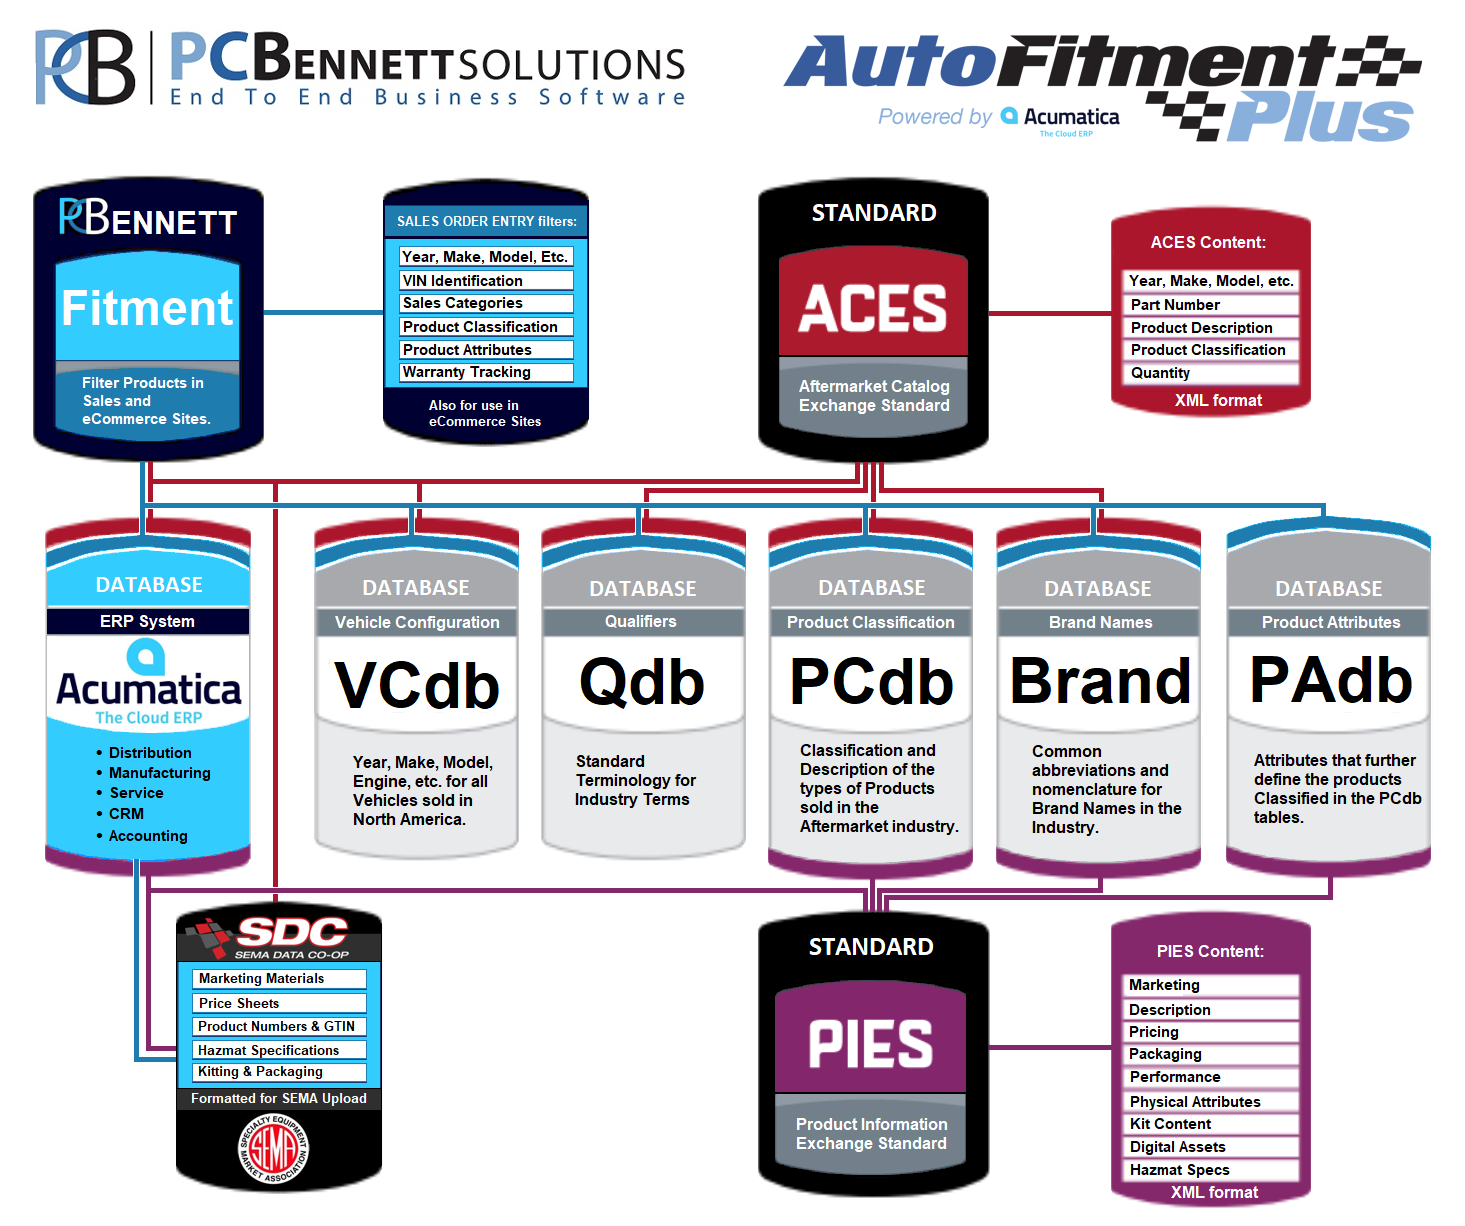 PC Bennett Solutions and AutoFitment Plus solutions tree.